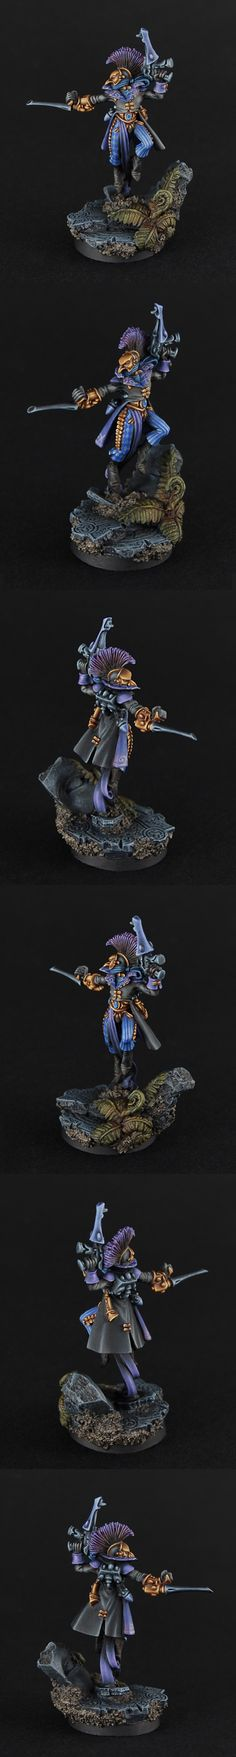 Harlequin - very nice subtle blue patterning with gold accents and black base